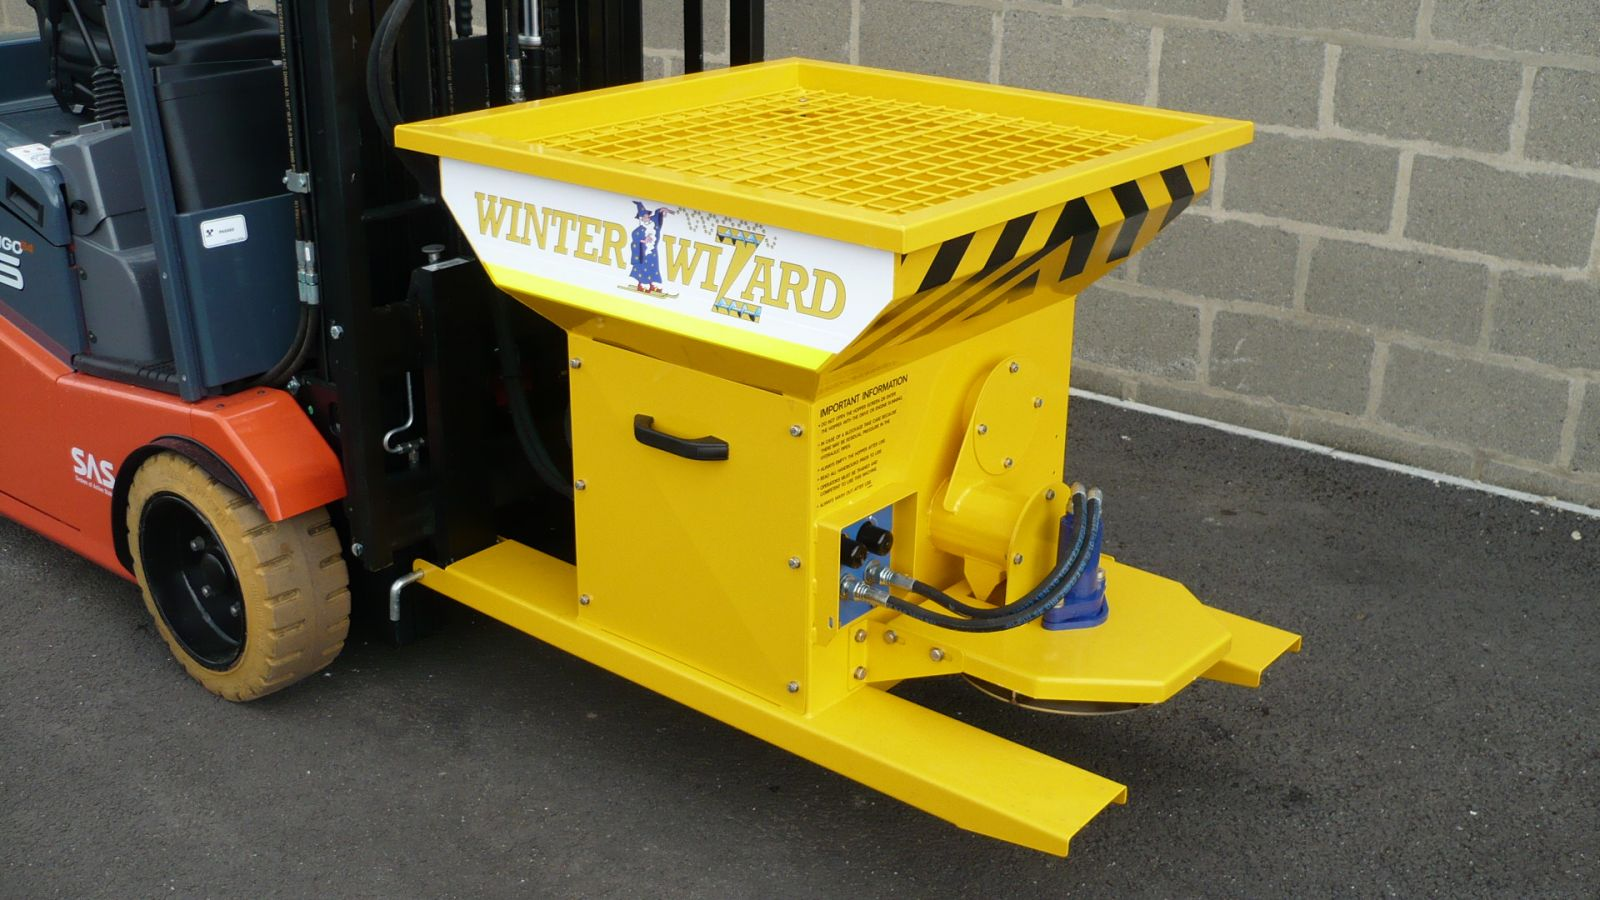 The Winter Wizard as easy to pick up as a loaded standard pallet!